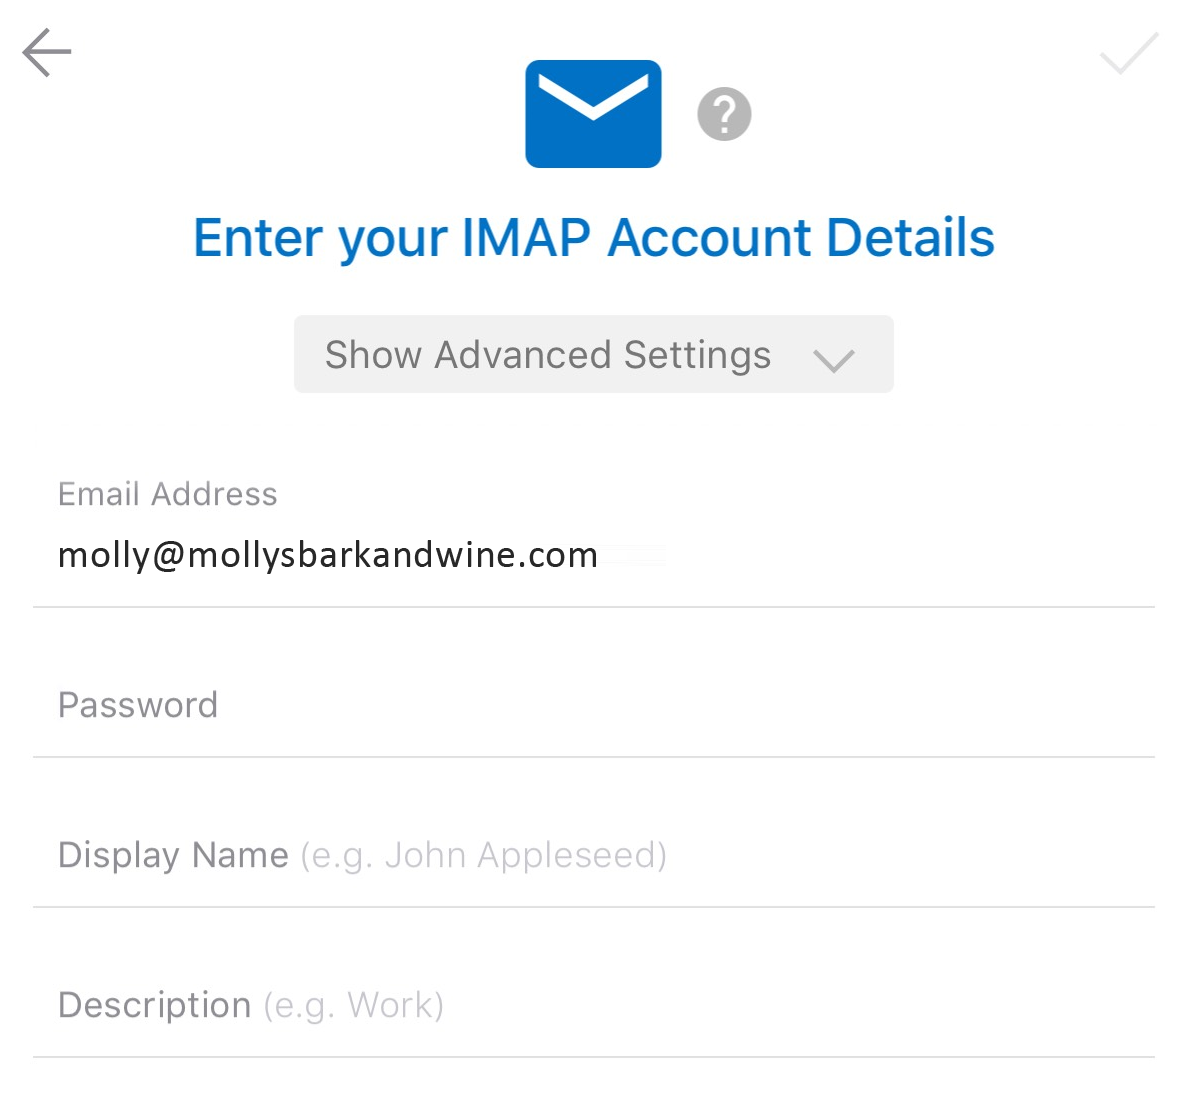 Type in email details